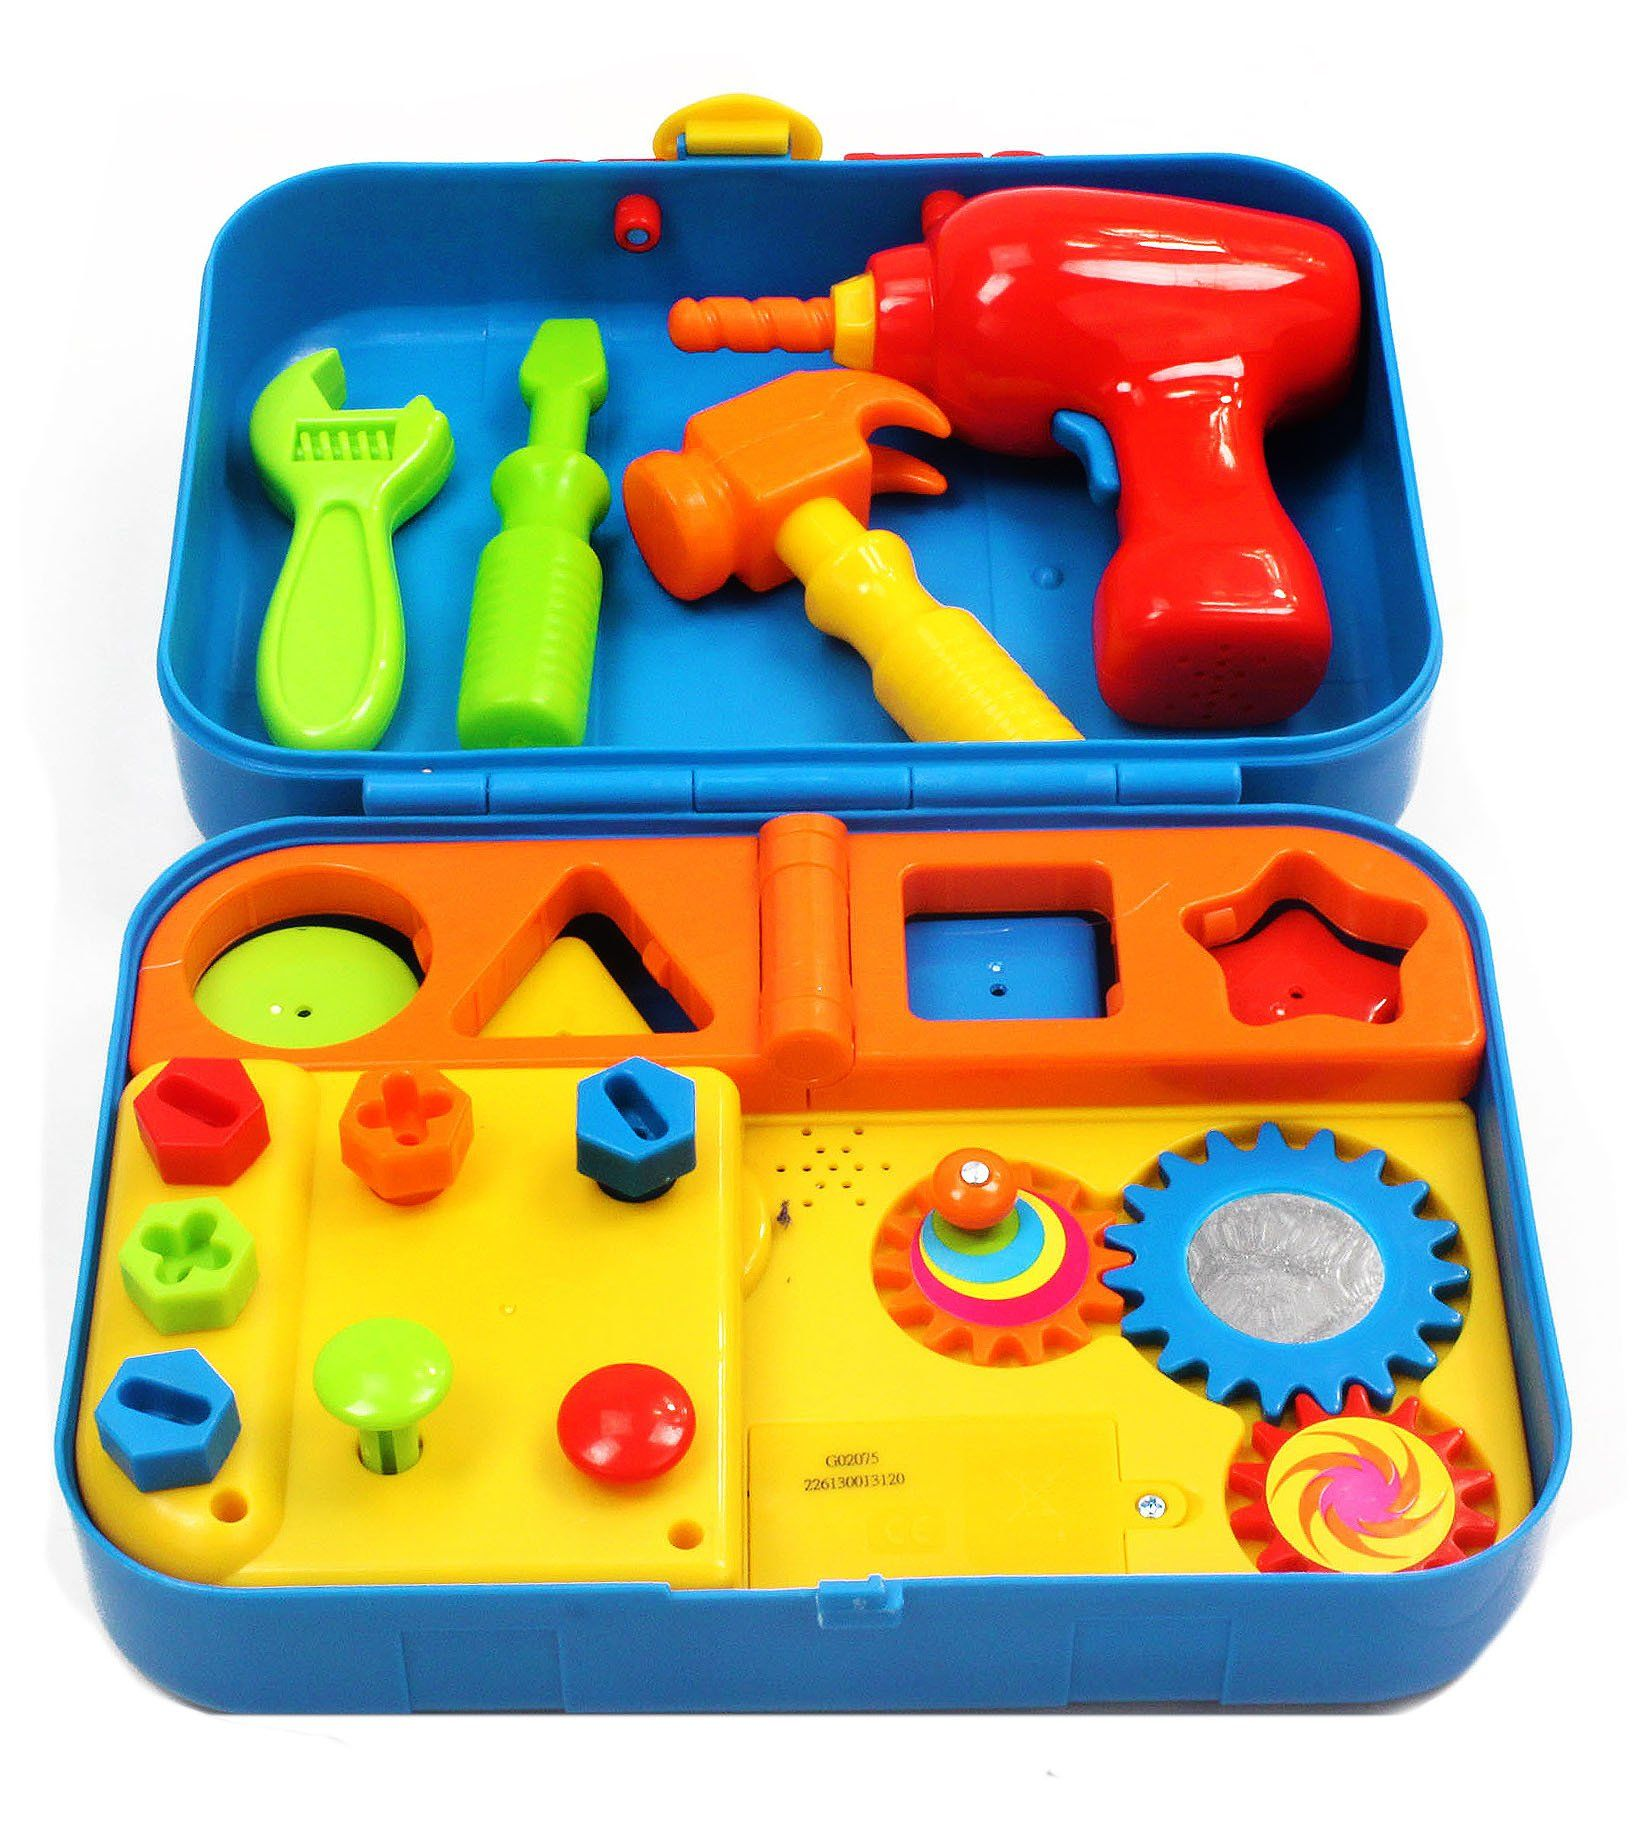 Best Gifts For 1 Year Old Boys In 2017 Toys For 1 Year